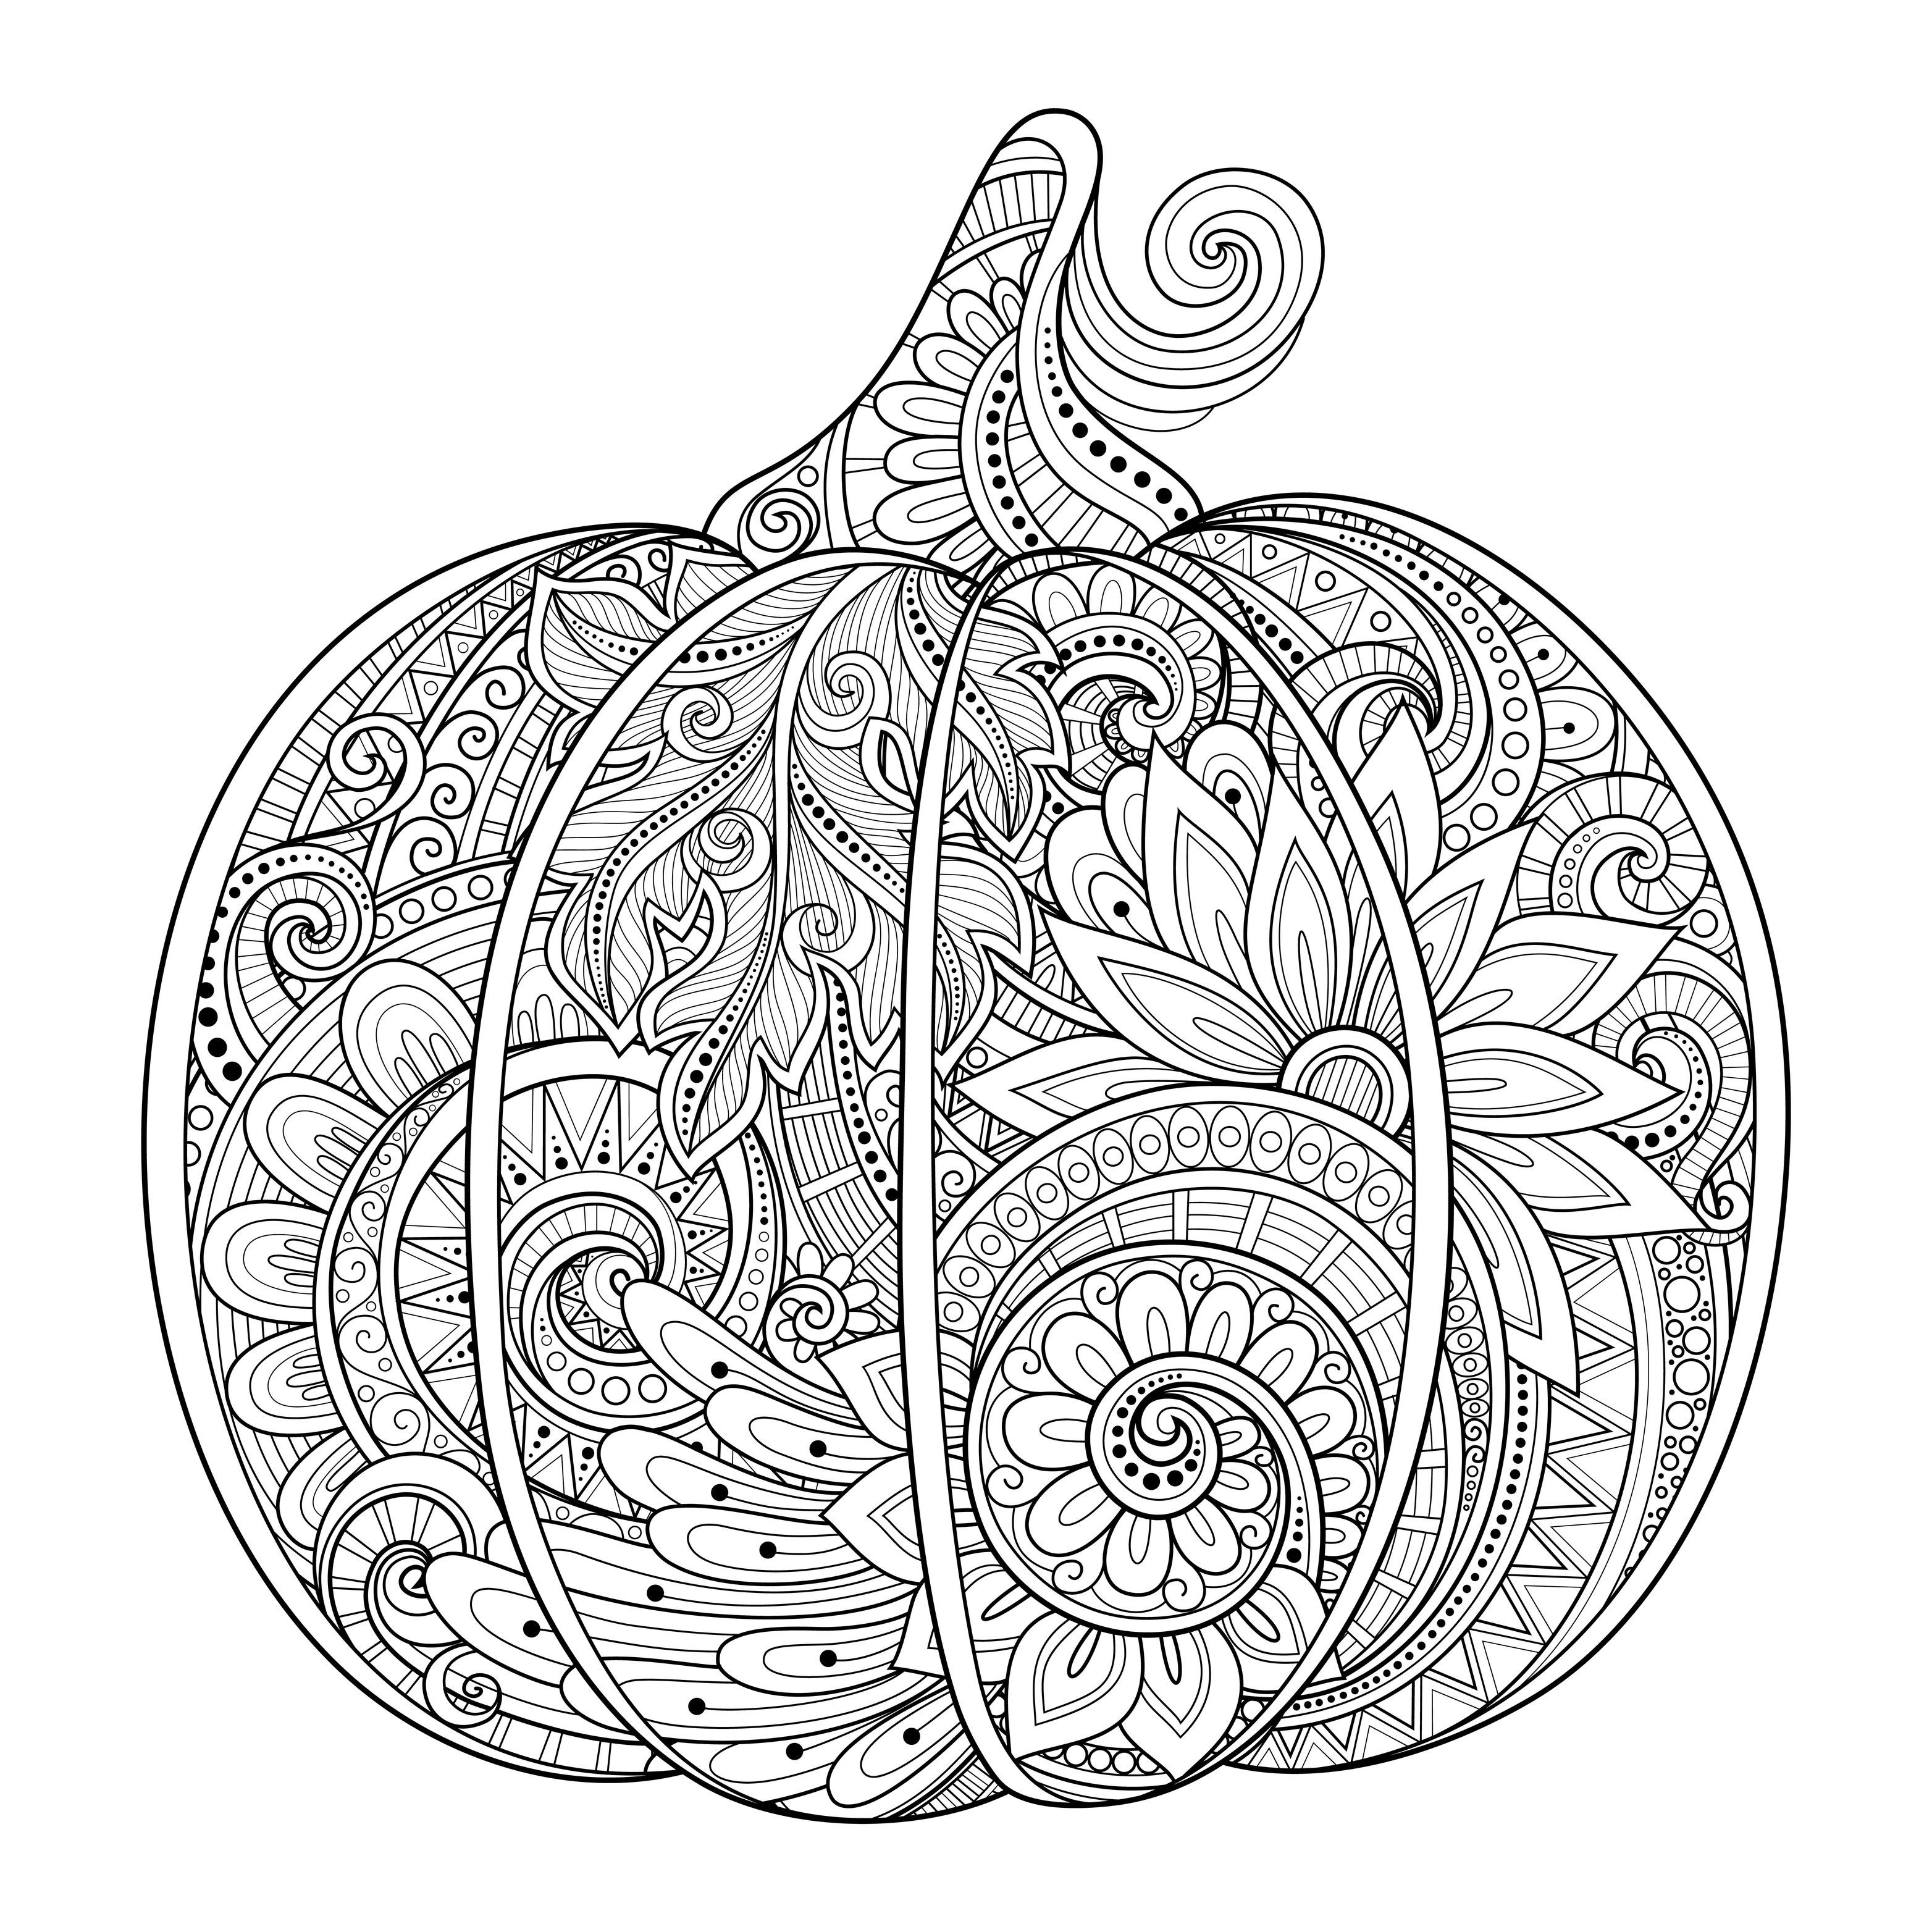 25 Inspiration Picture Of Coloring Pages Halloween Albanysinsanity Com Pumpkin Coloring Pages Fall Coloring Pages Halloween Coloring Book